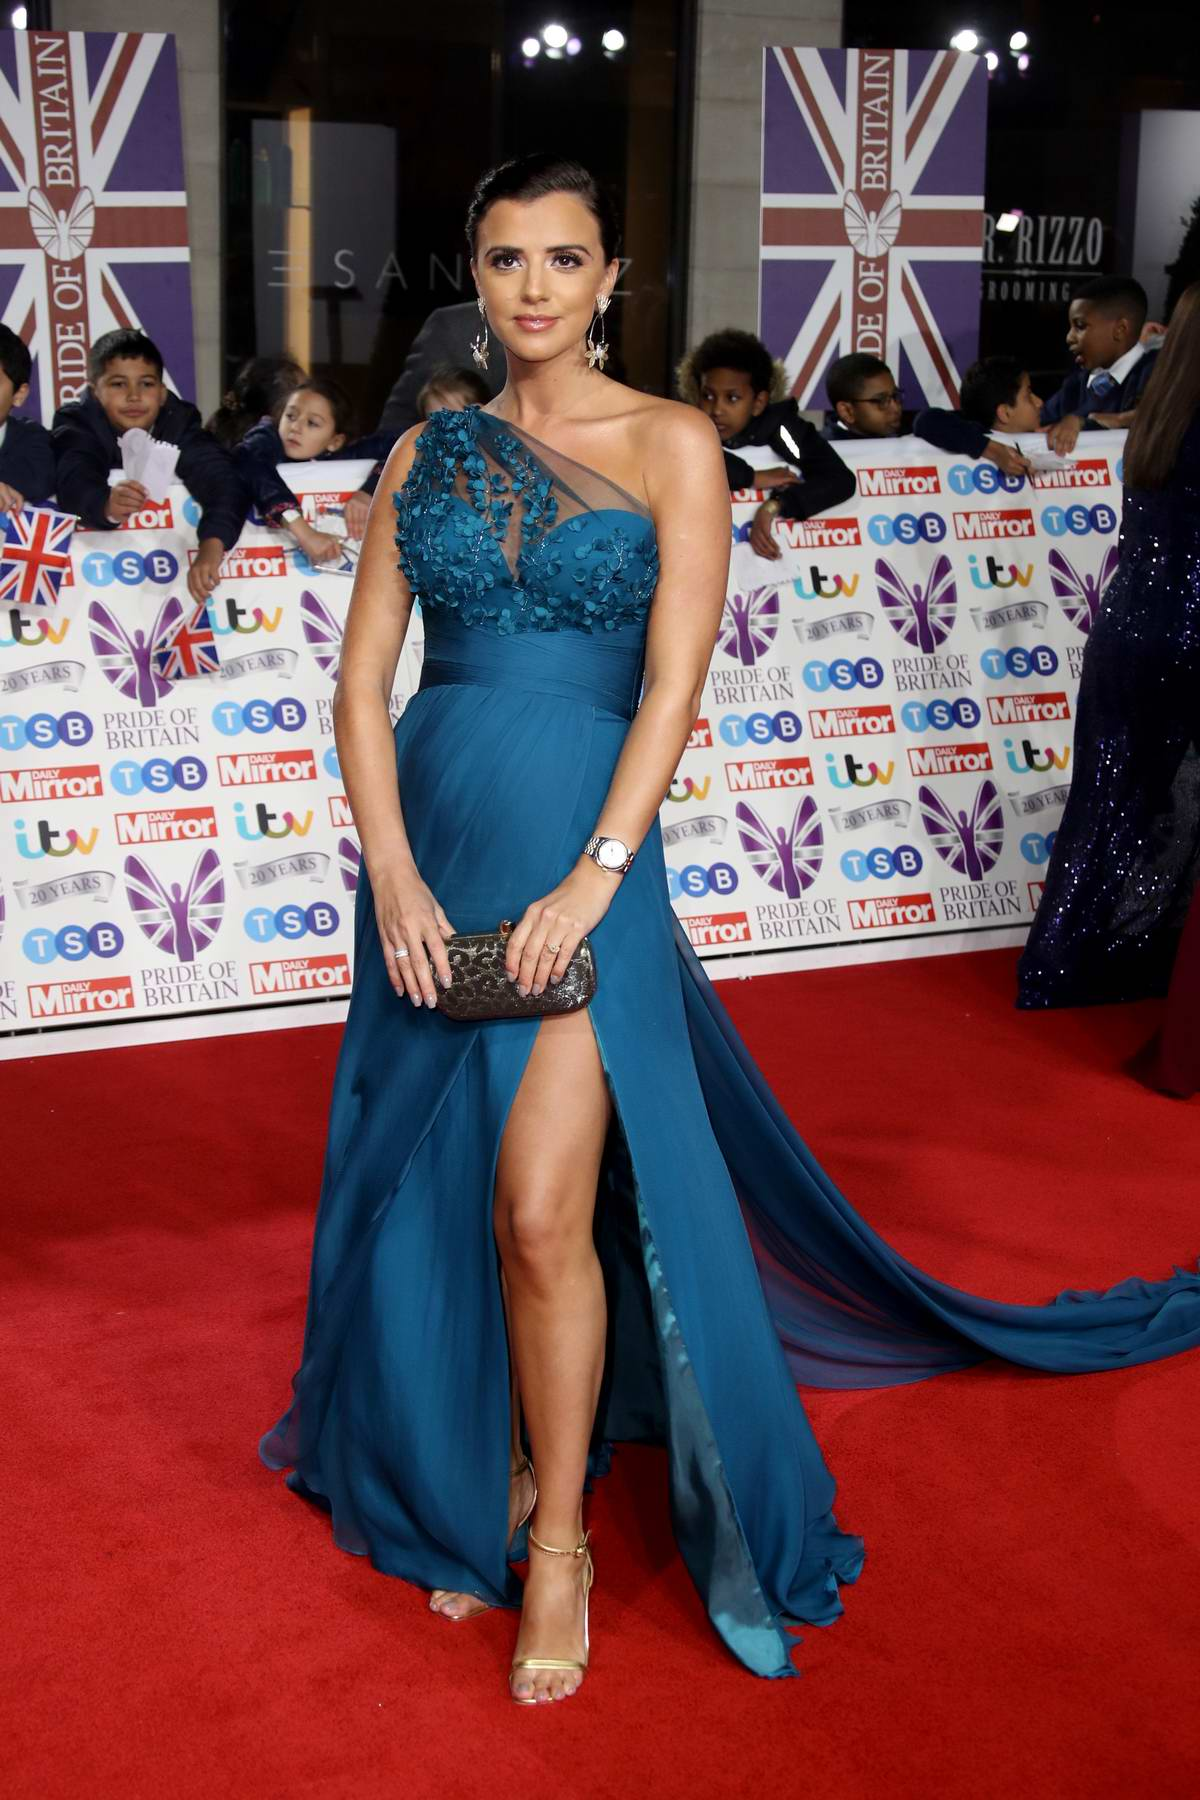 Lucy Mecklenburgh attends the Pride of Britain Awards 2019 at Grosvenor House in London, UK